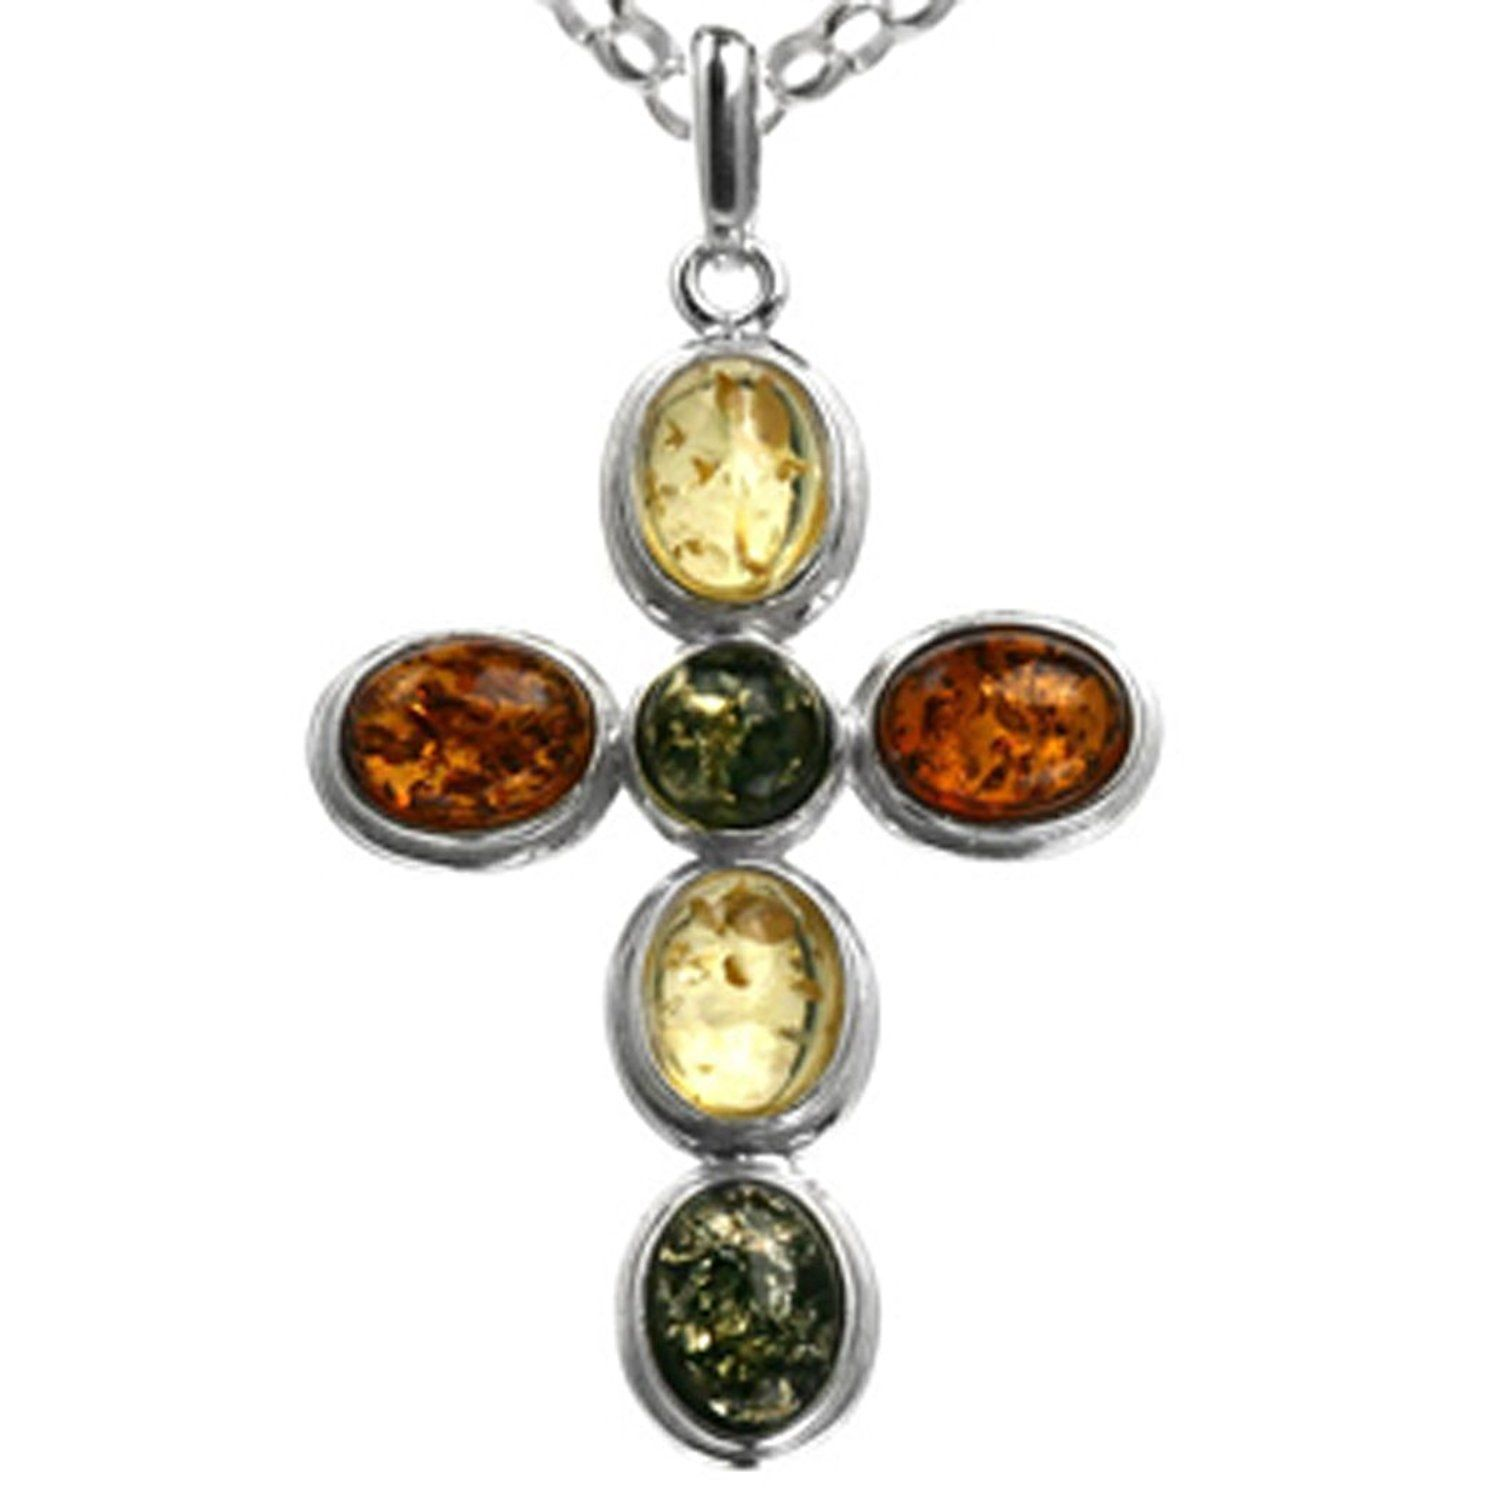 Multicolor Amber Sterling Silver Dragonfly Pendant Necklace Chain 46 cm Wy6UteUuJ